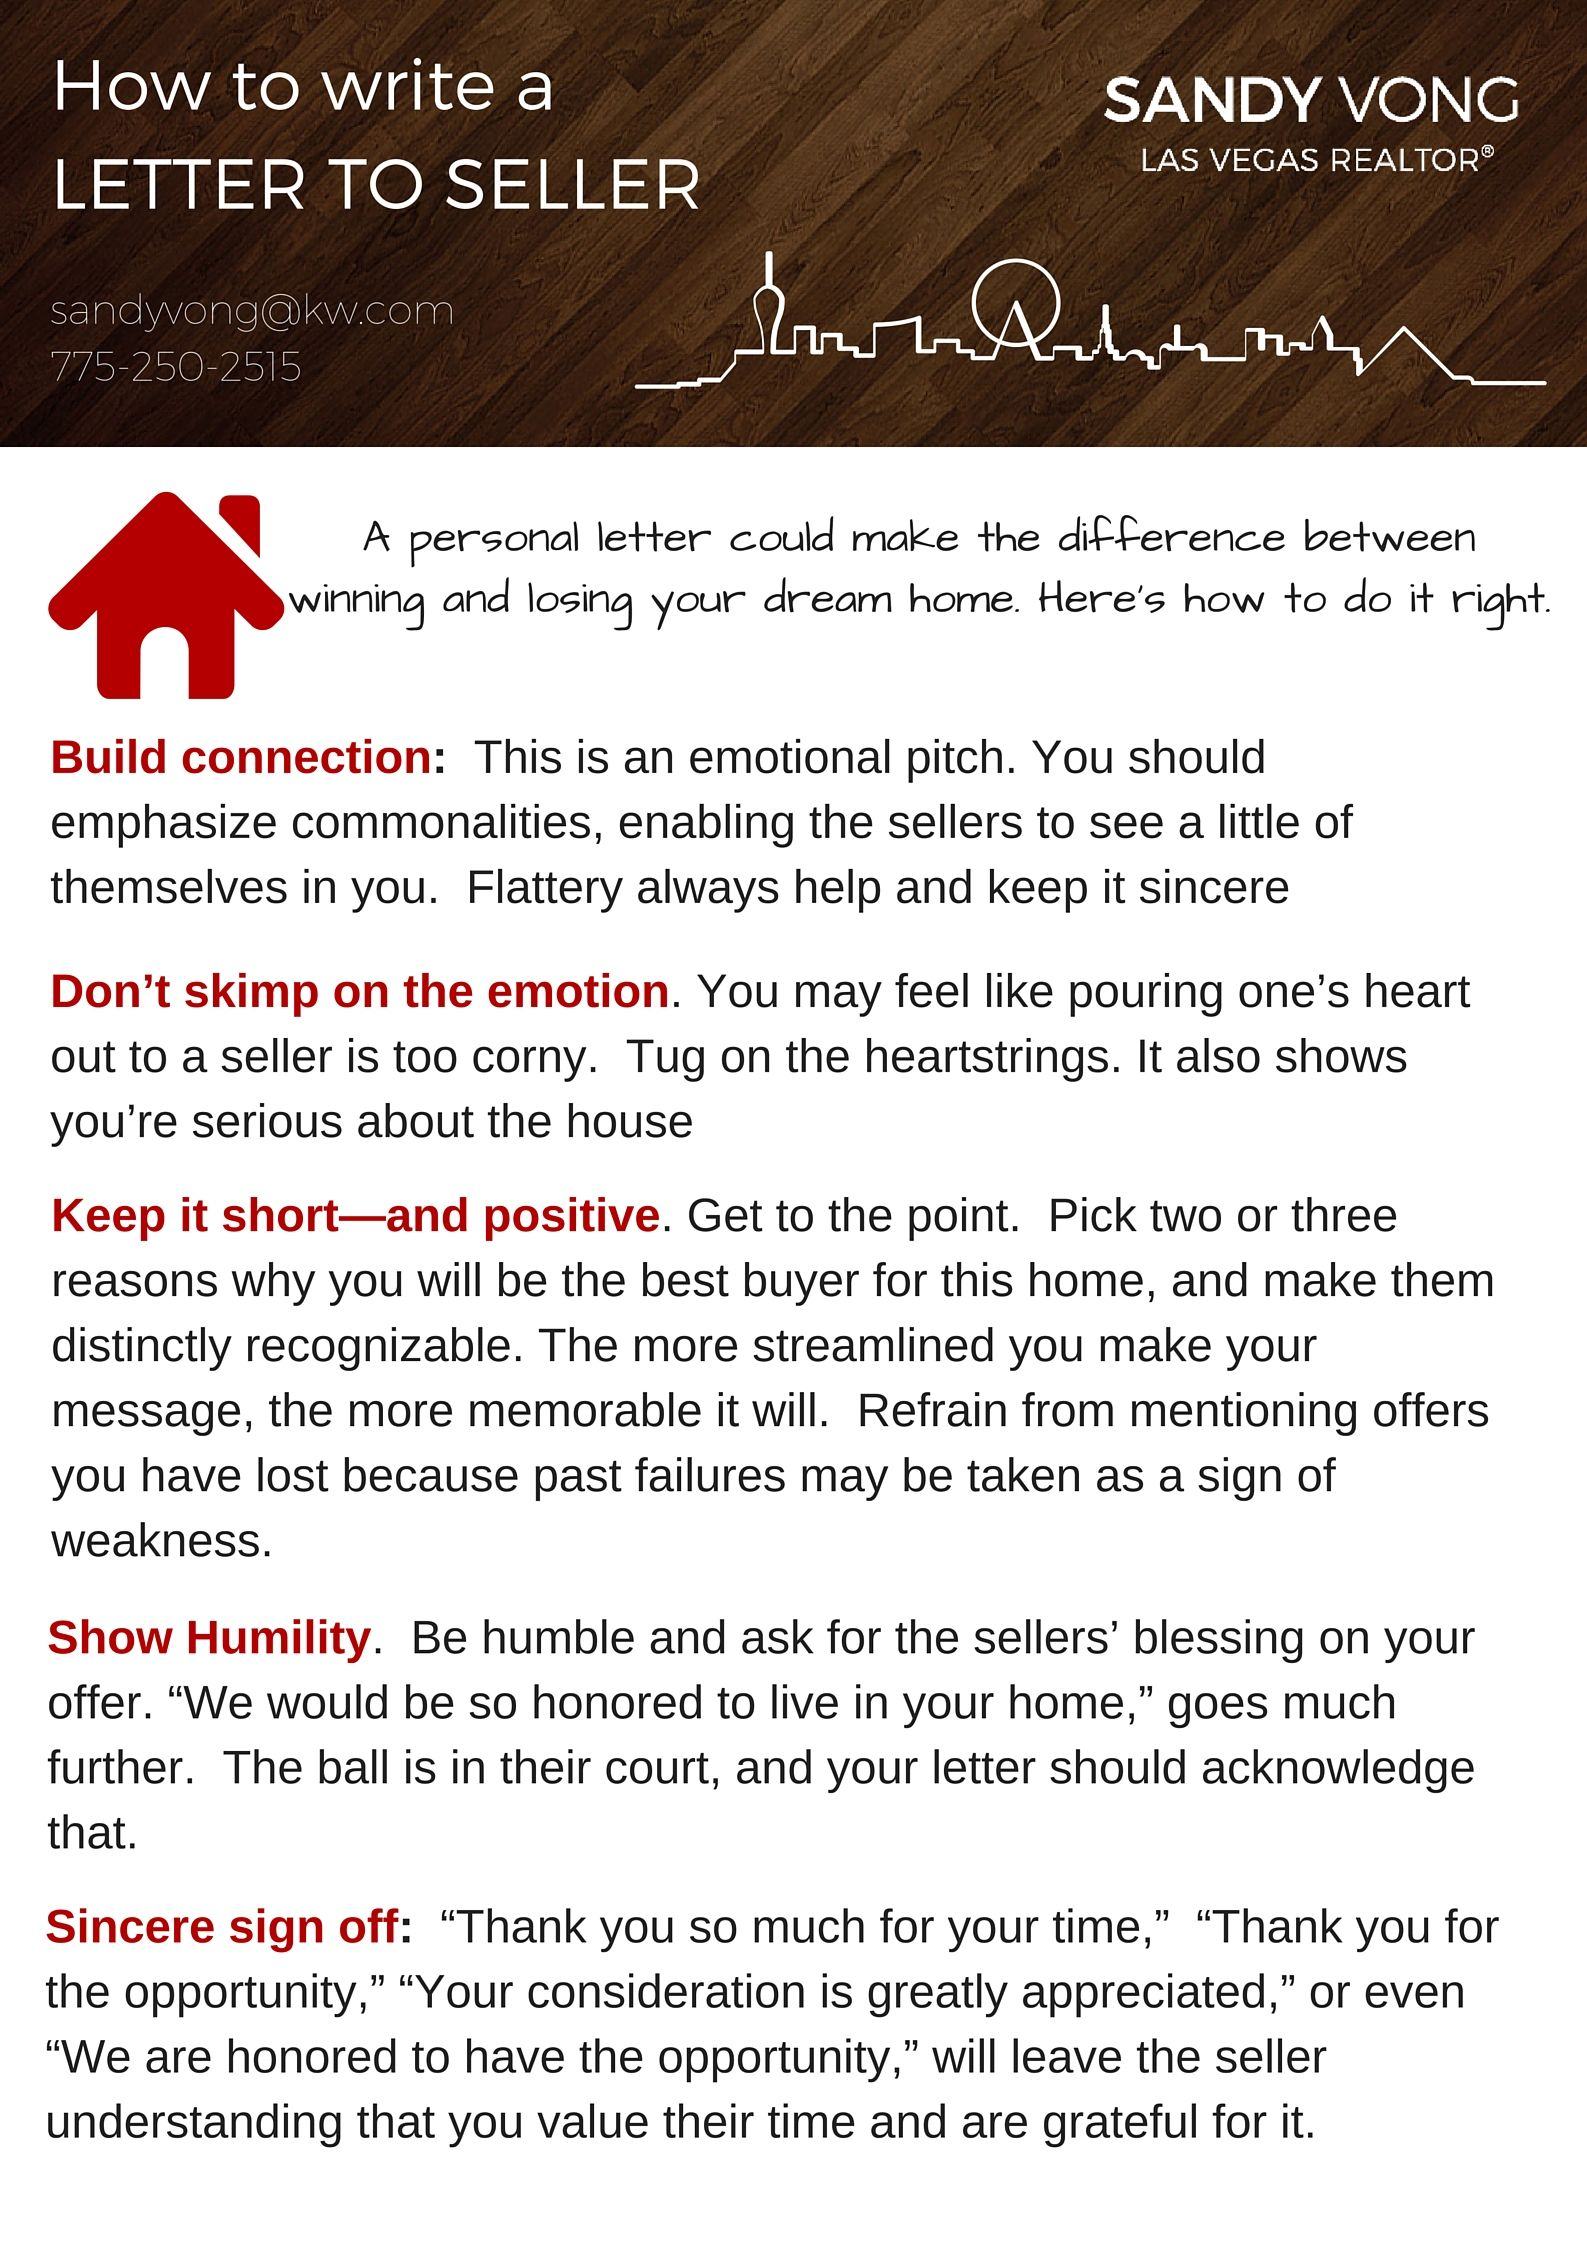 Are you trying to buy a home in a seller's market? Here are some